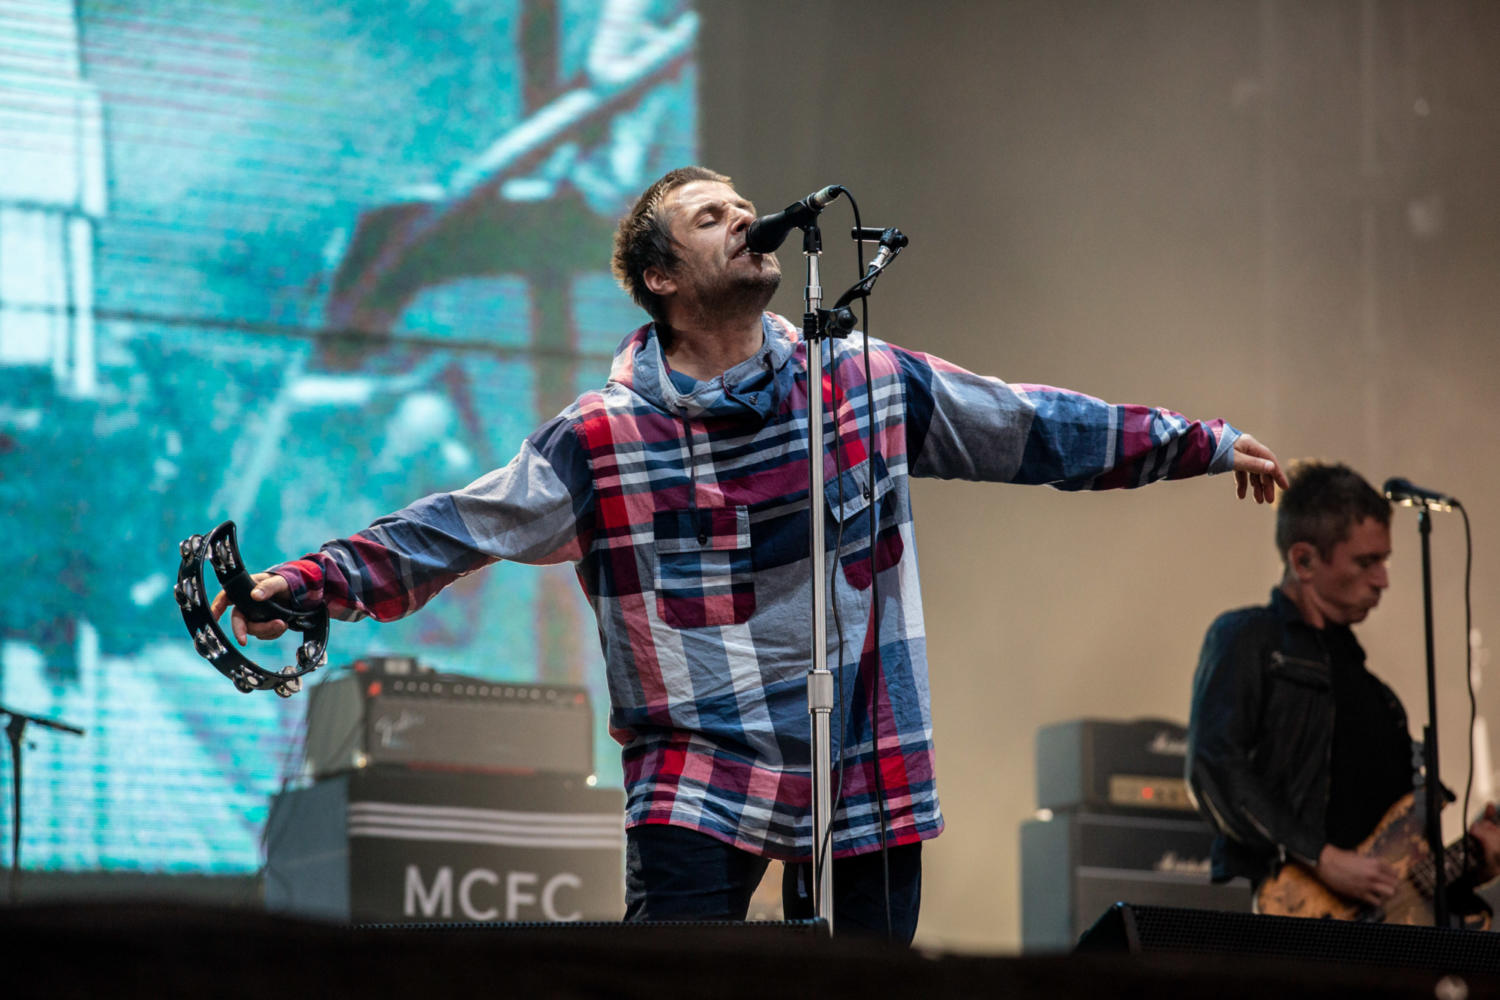 Liam Gallagher to headline Reading & Leeds 2020